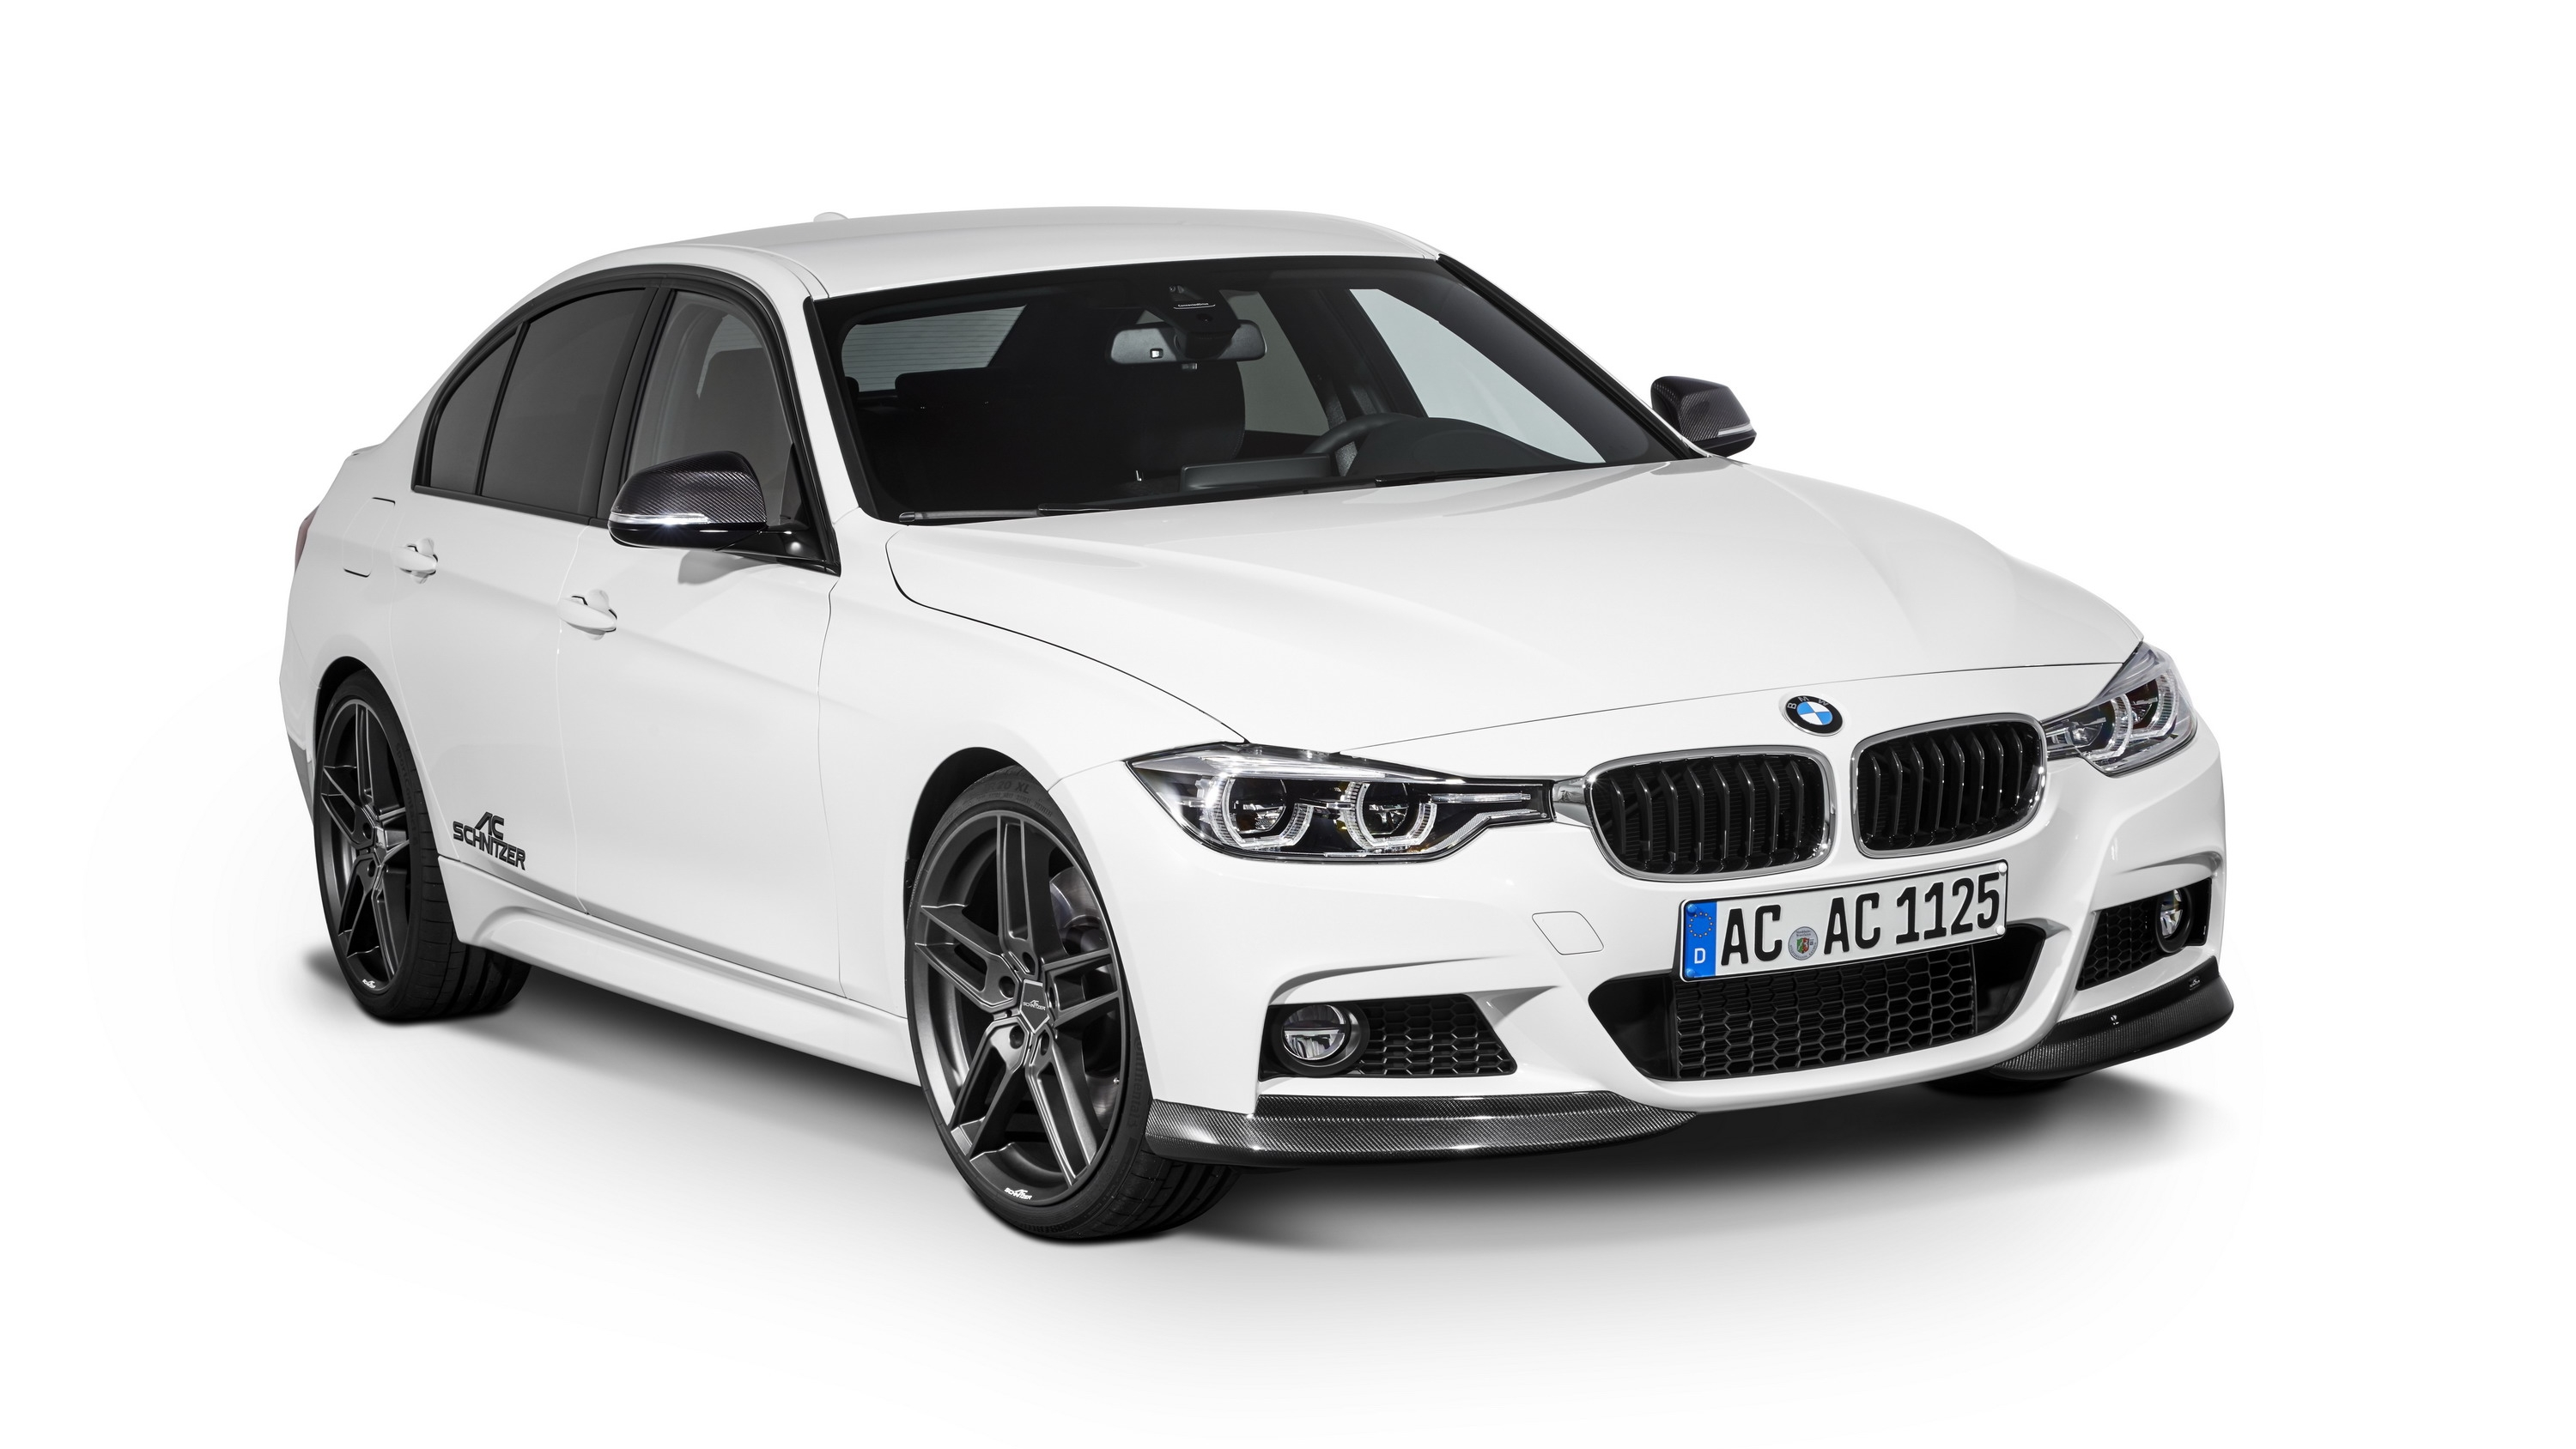 2015 bmw 3 series lci by ac schnitzer review top speed. Black Bedroom Furniture Sets. Home Design Ideas